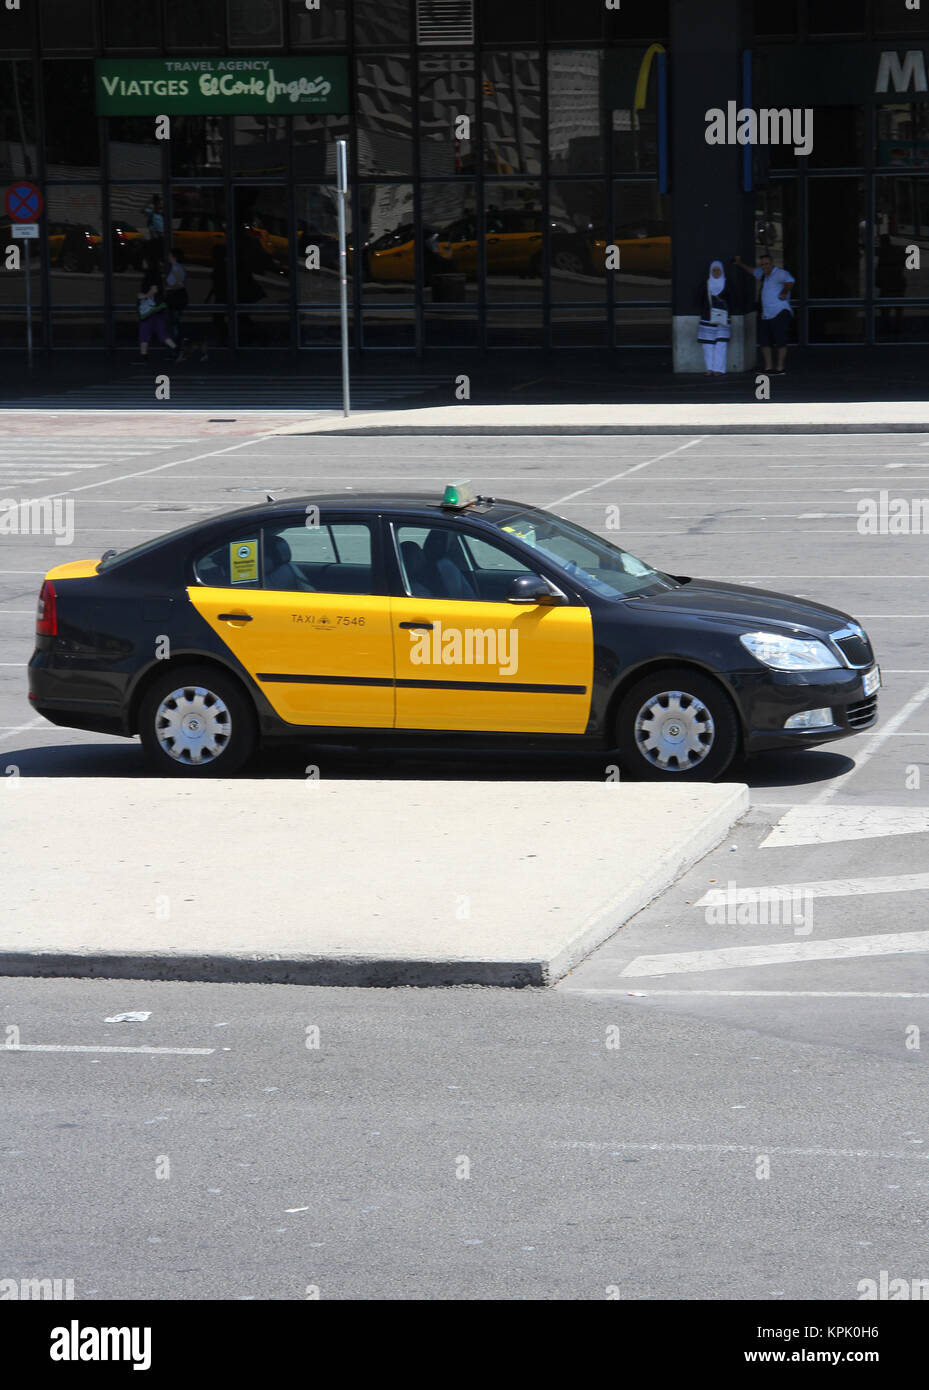 Skoda auto taxi cab in parking lot of Sants Railway Station, Barcelona, Spain. - Stock Image